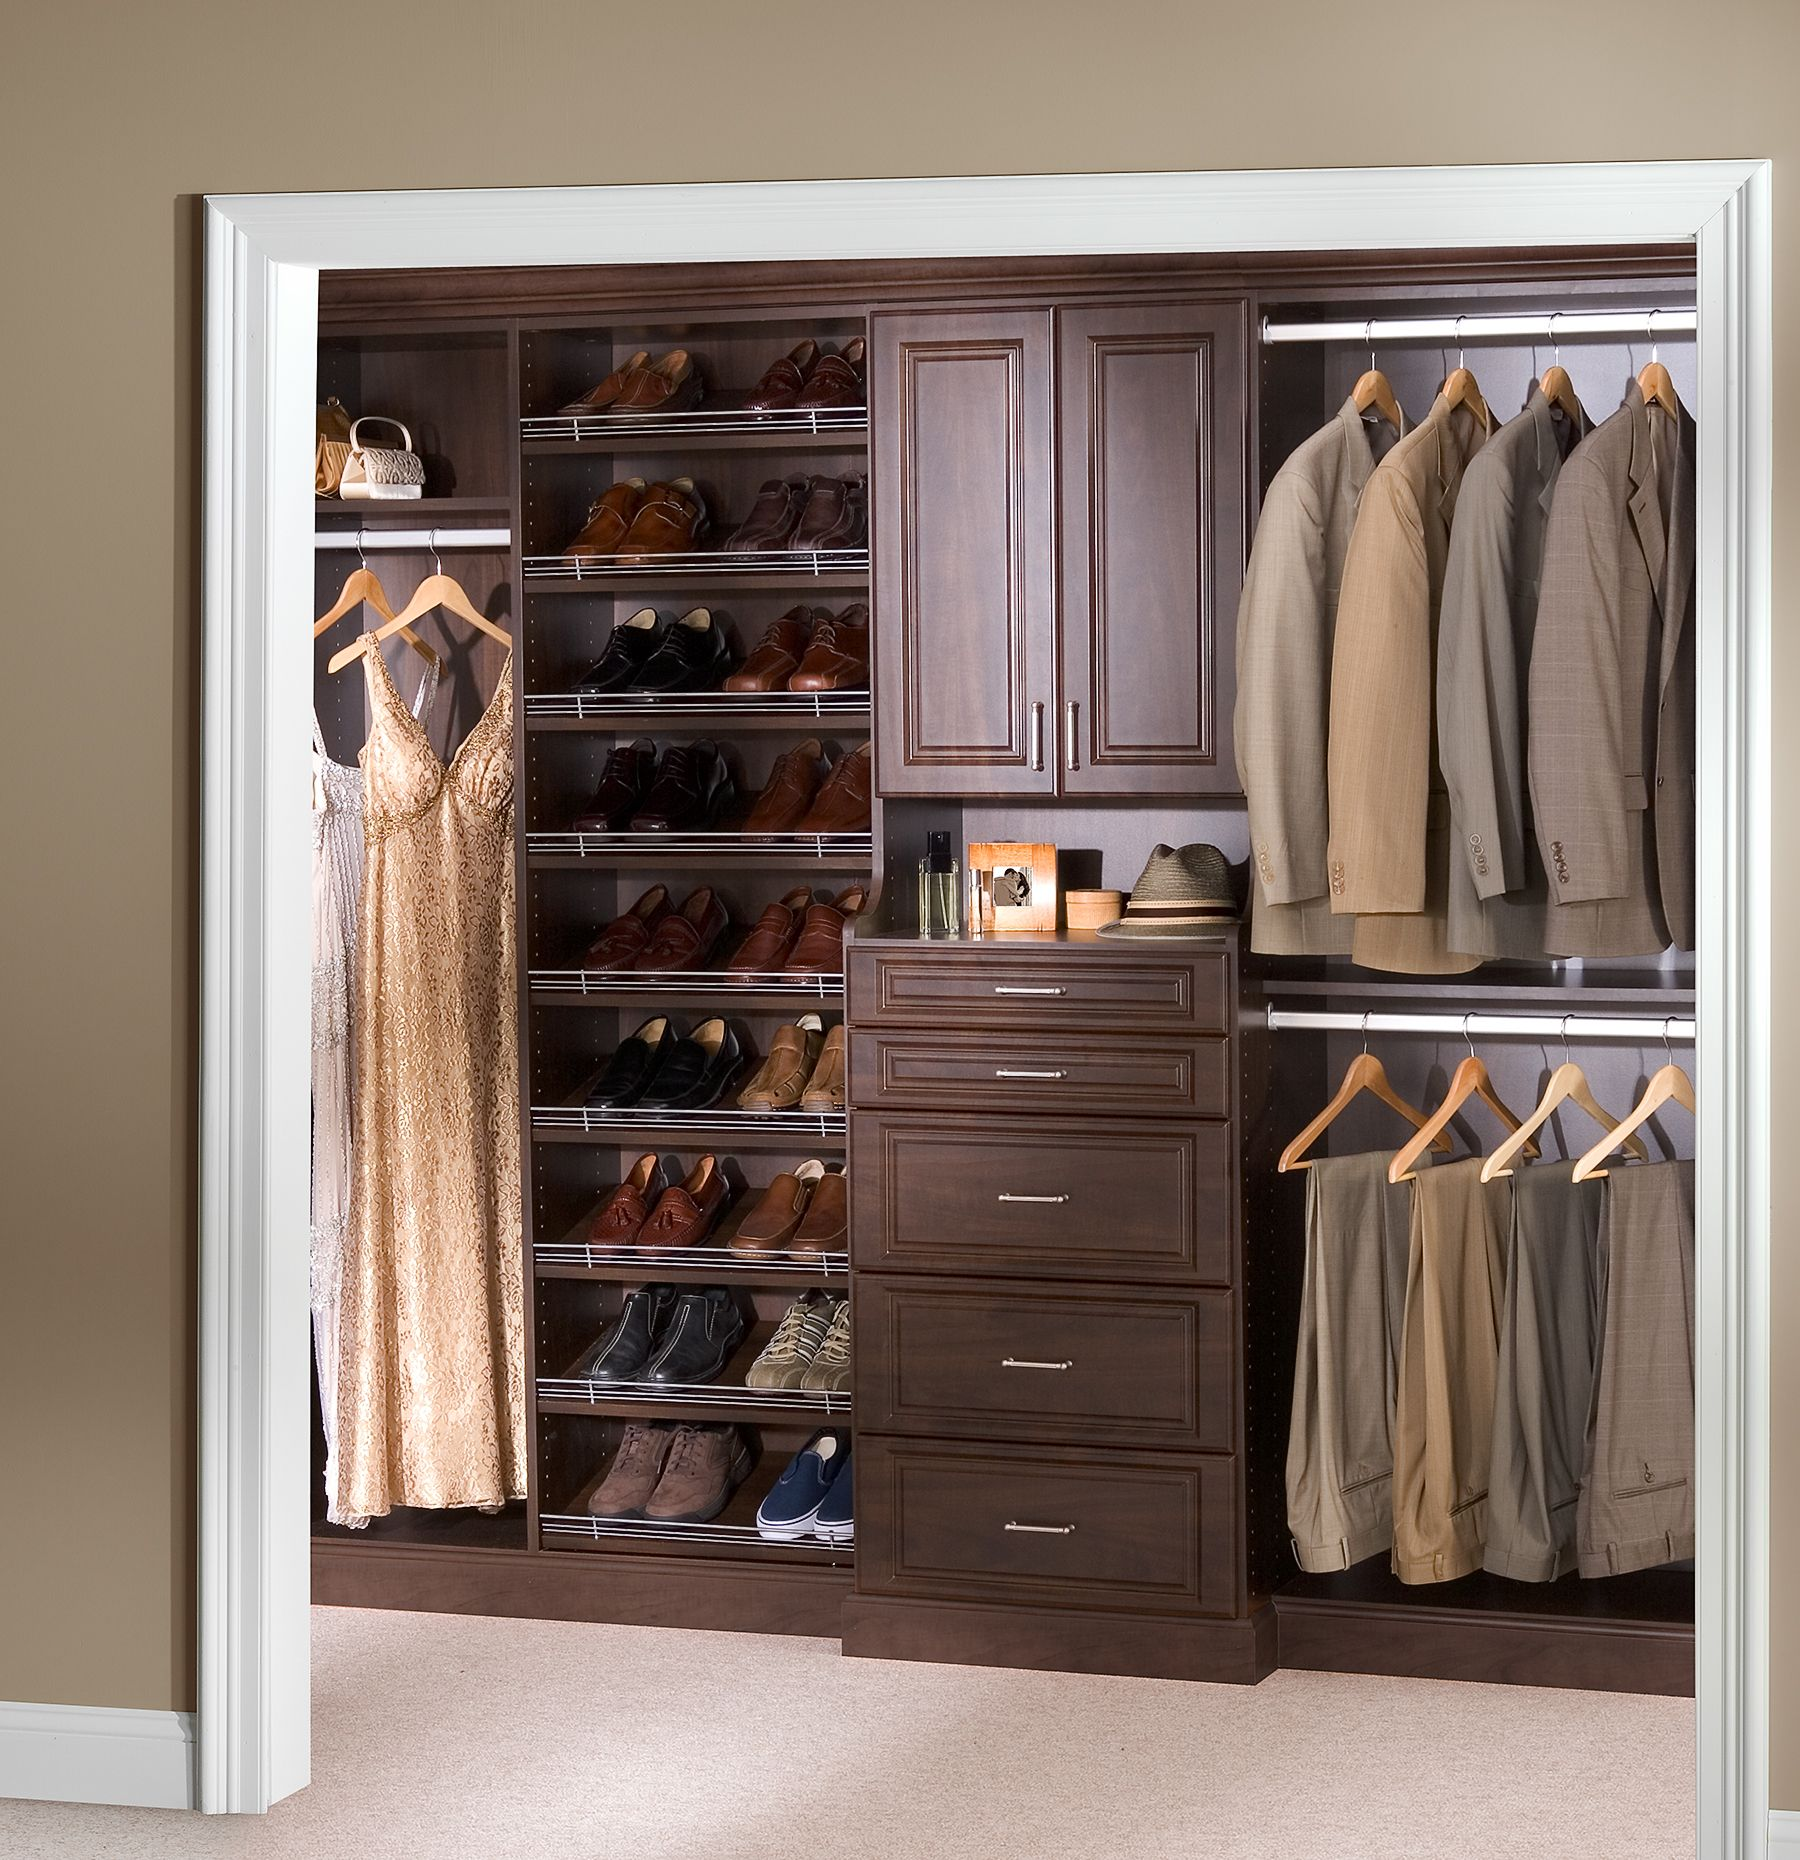 Closet organization systems o r g a n i z e pinterest Pictures of closet organizers